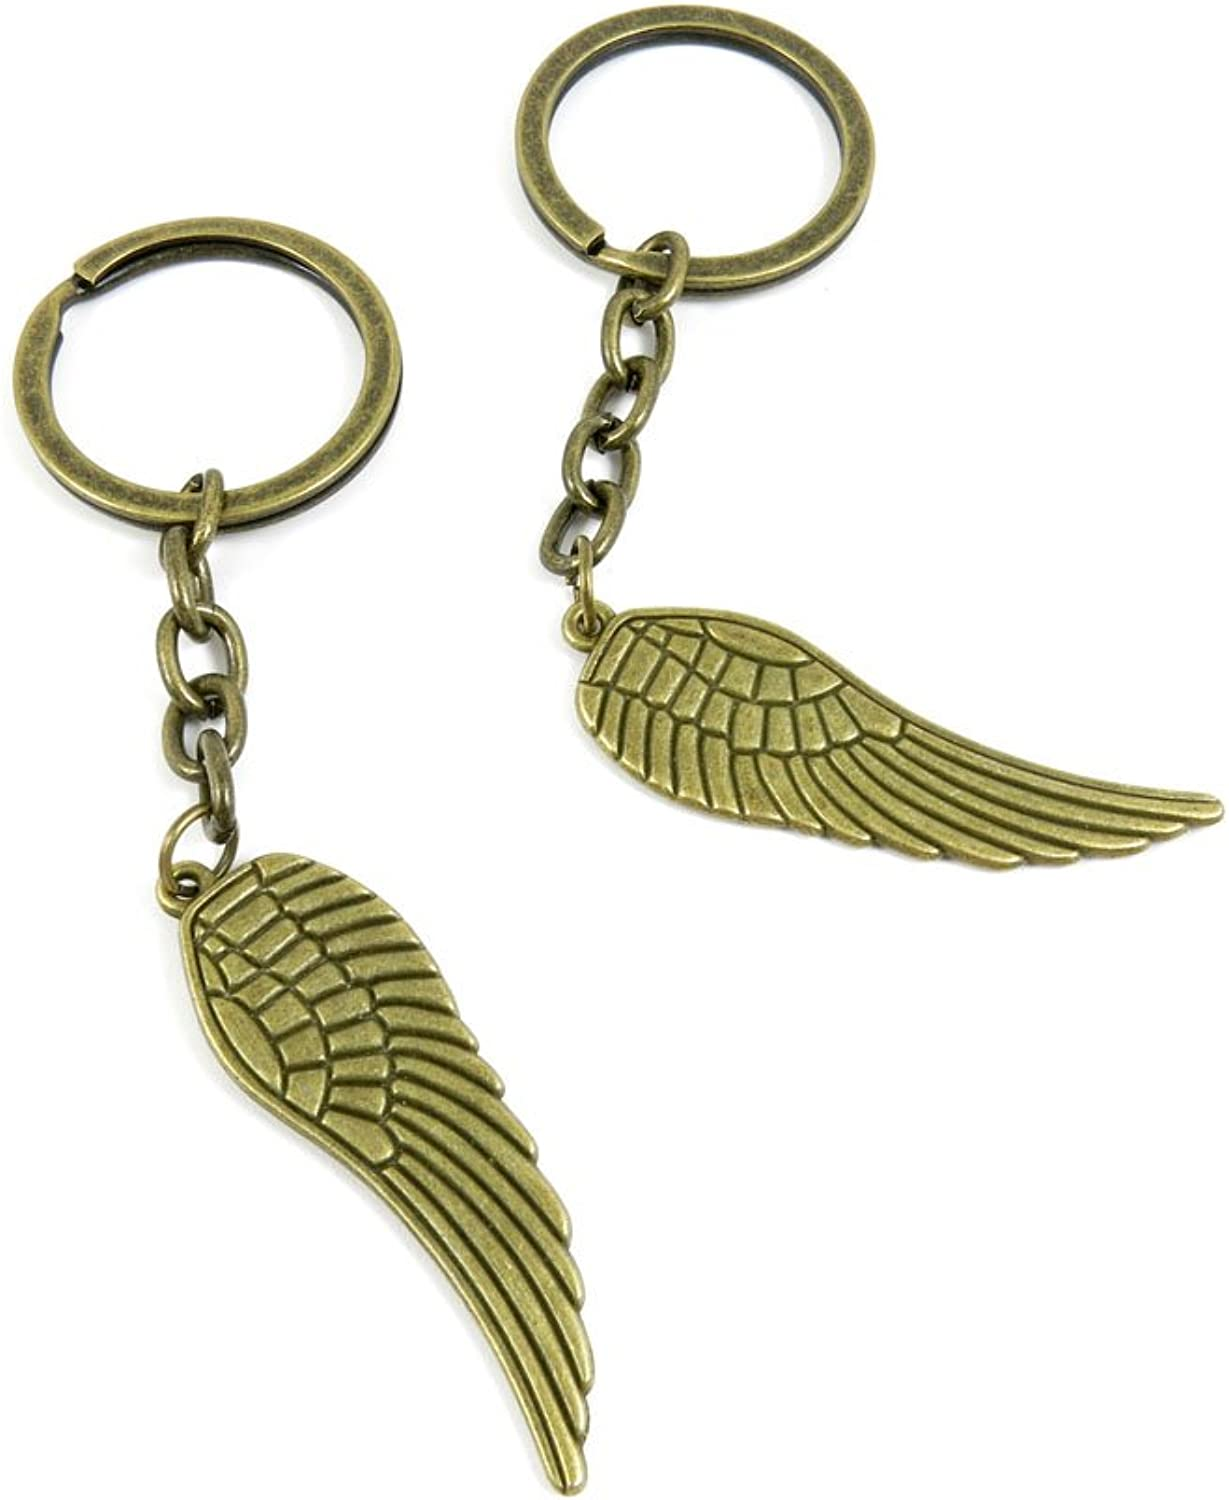 150 Pieces Fashion Jewelry Keyring Keychain Door Car Key Tag Ring Chain Supplier Supply Wholesale Bulk Lots S2ZU3 Angel Wings